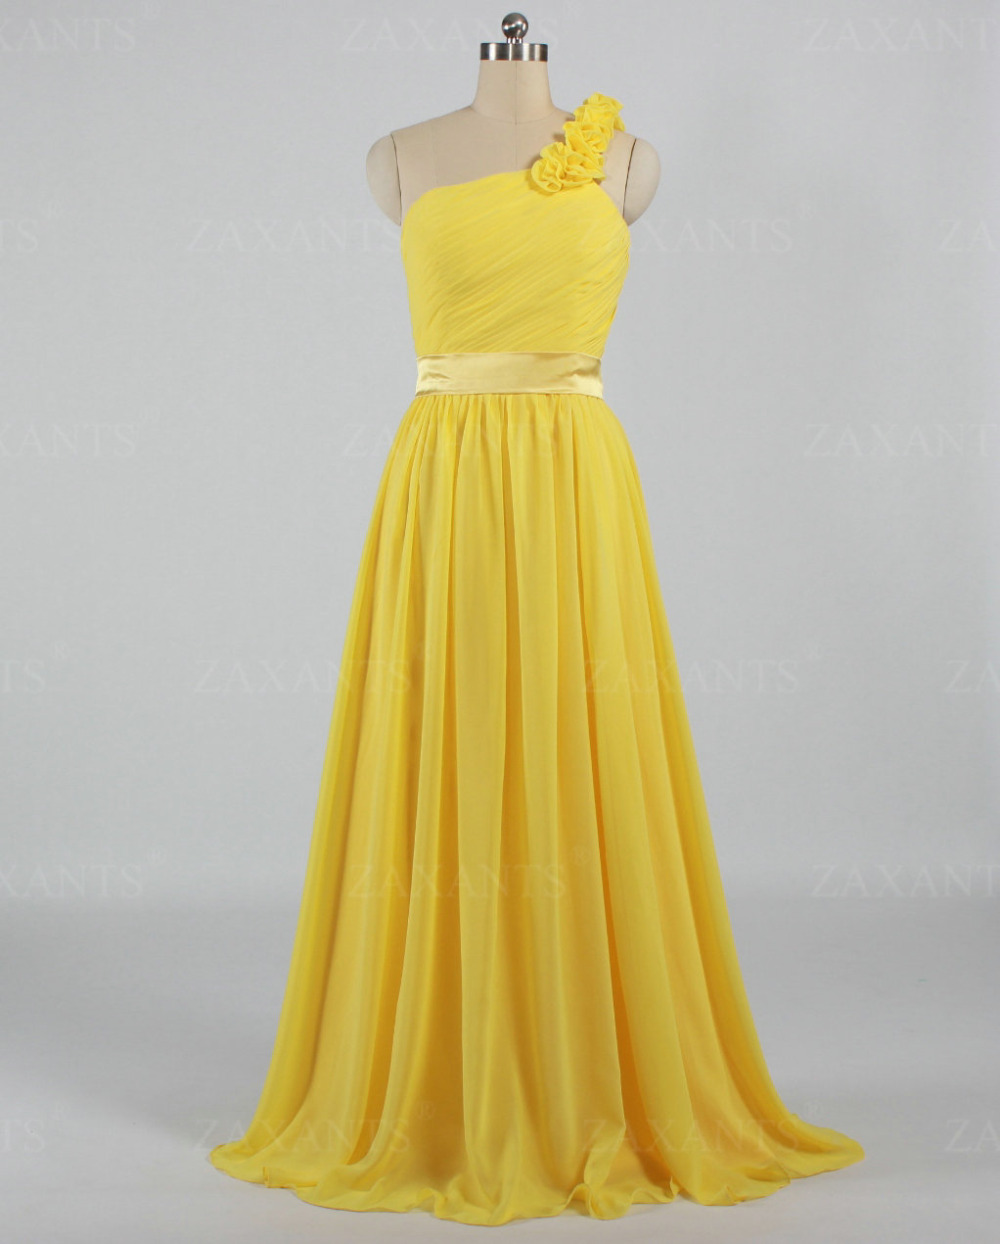 E1758 free shipping vinage wedding party guest one shoulder chiffon e1758 free shipping vinage wedding party guest one shoulder chiffon long bridesmaid dresses yellow in bridesmaid dresses from weddings events on ombrellifo Image collections